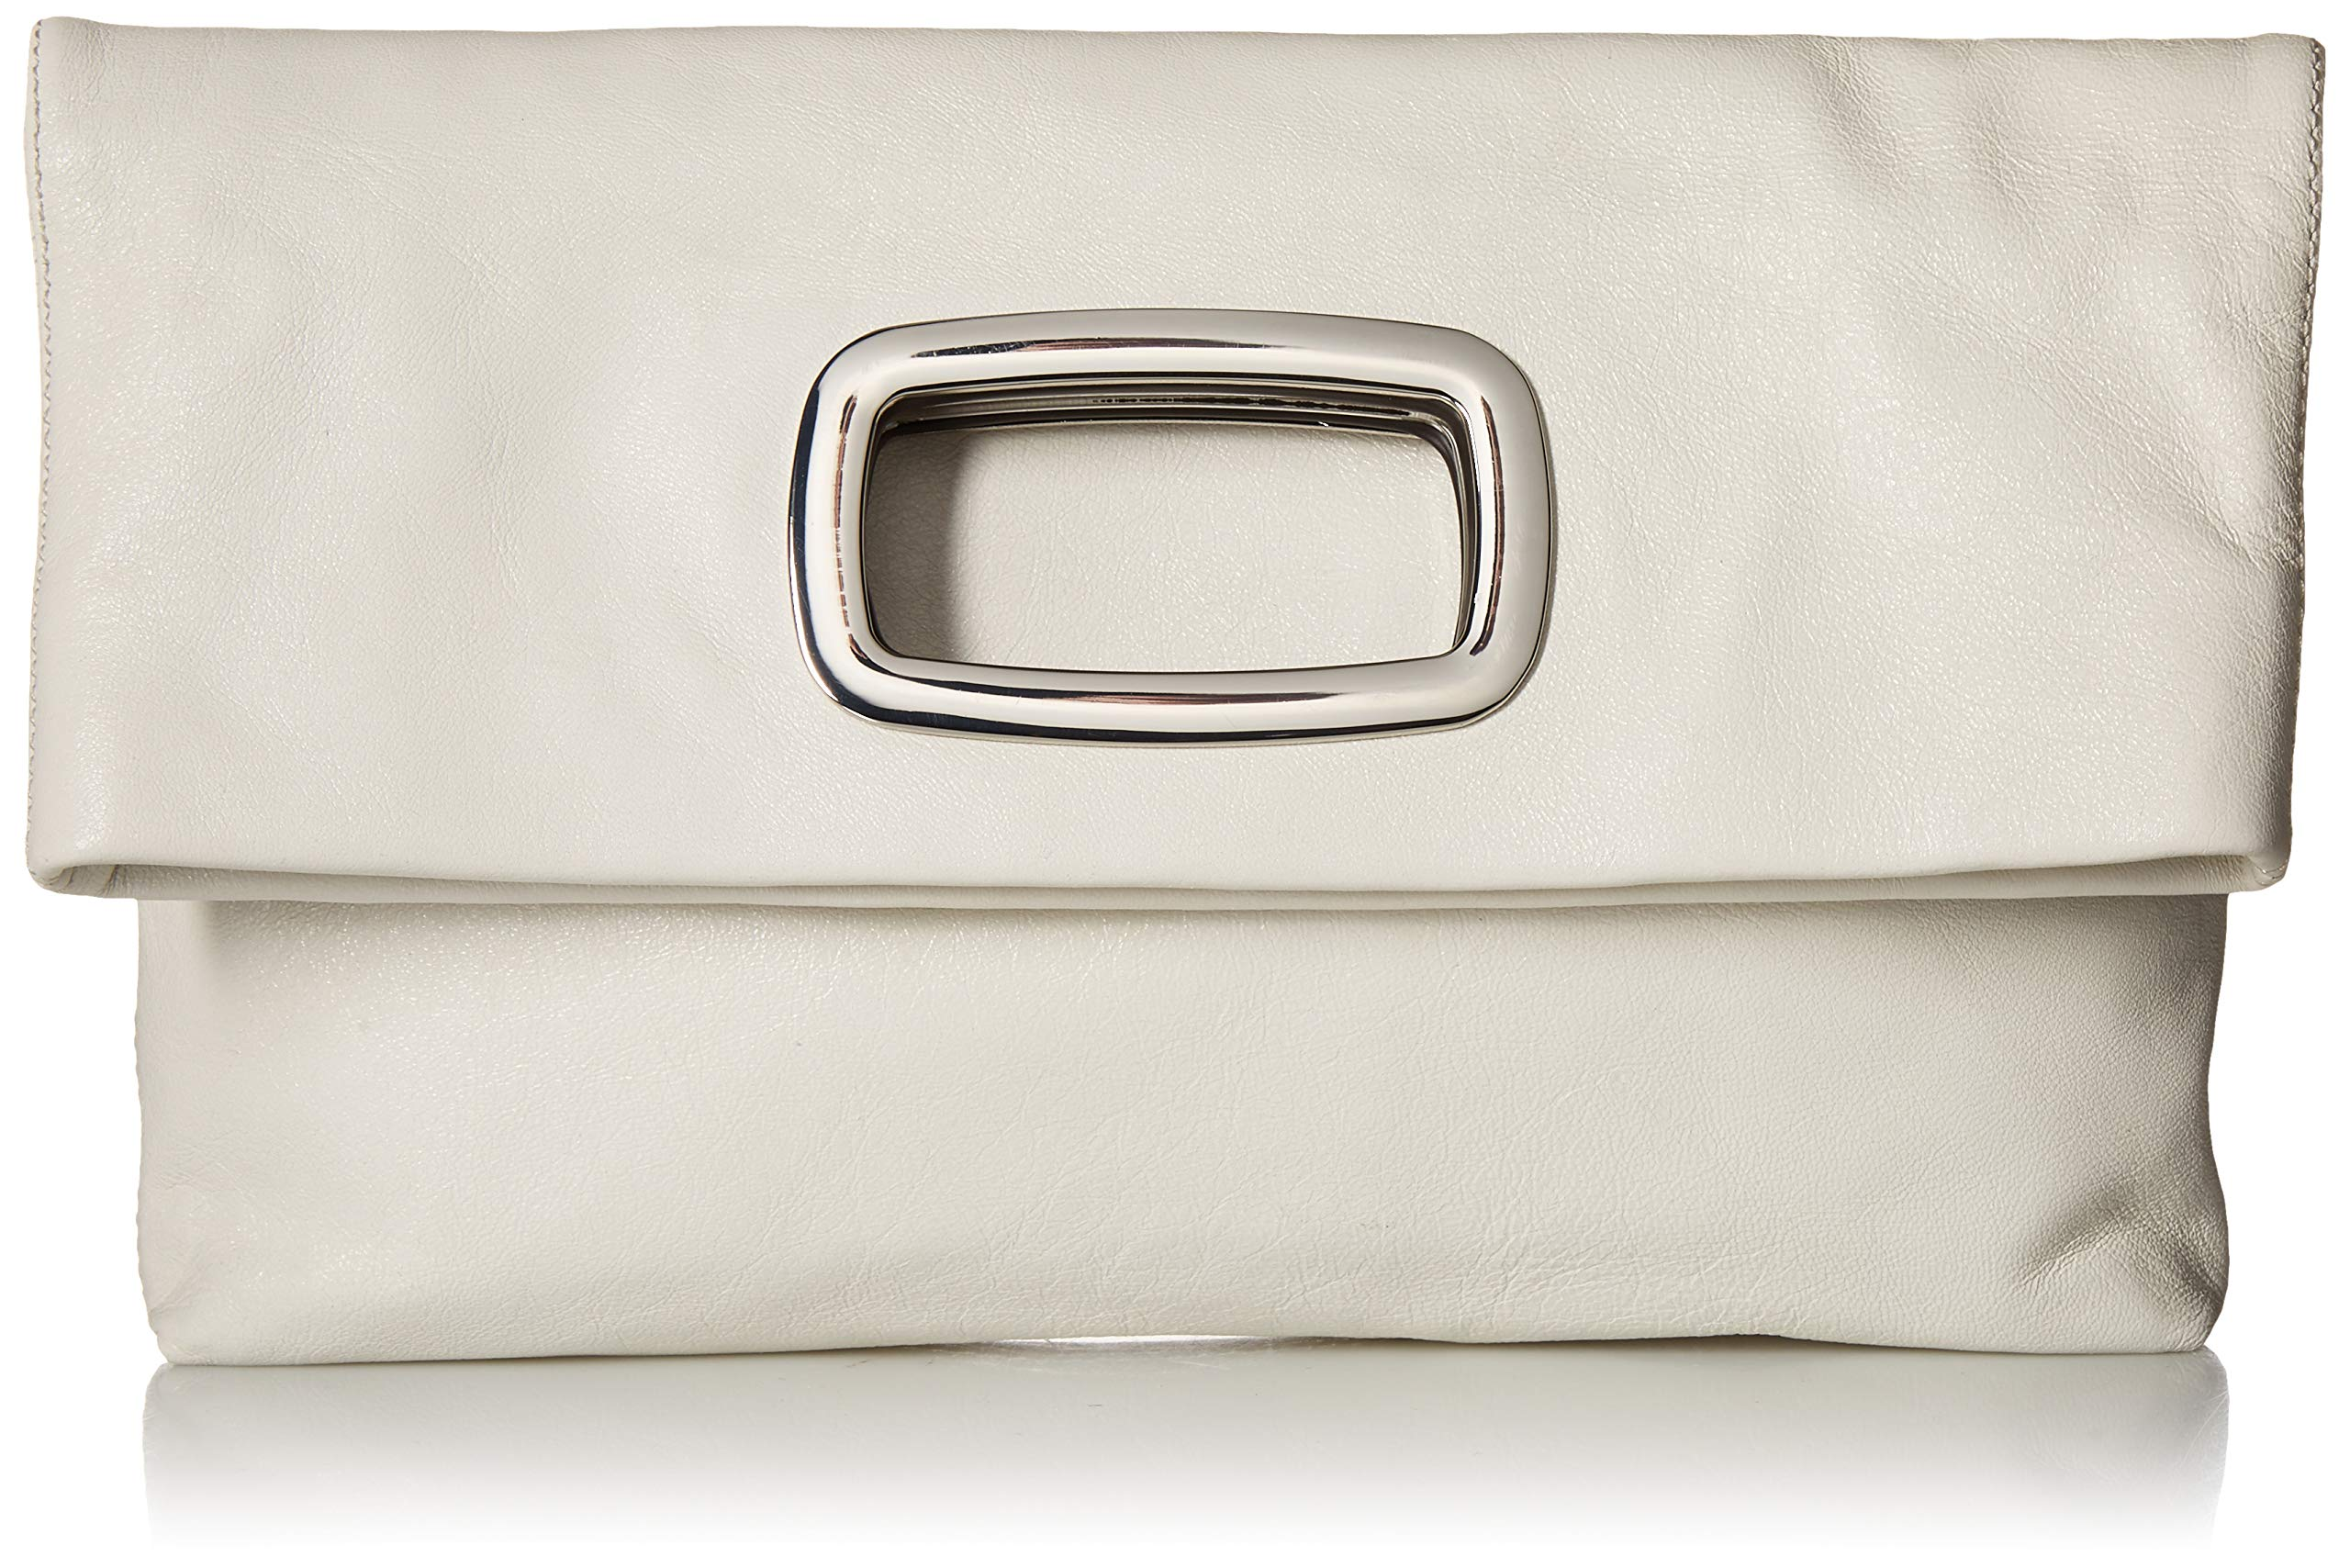 Vince Camuto Marti Large Clutch, snow white